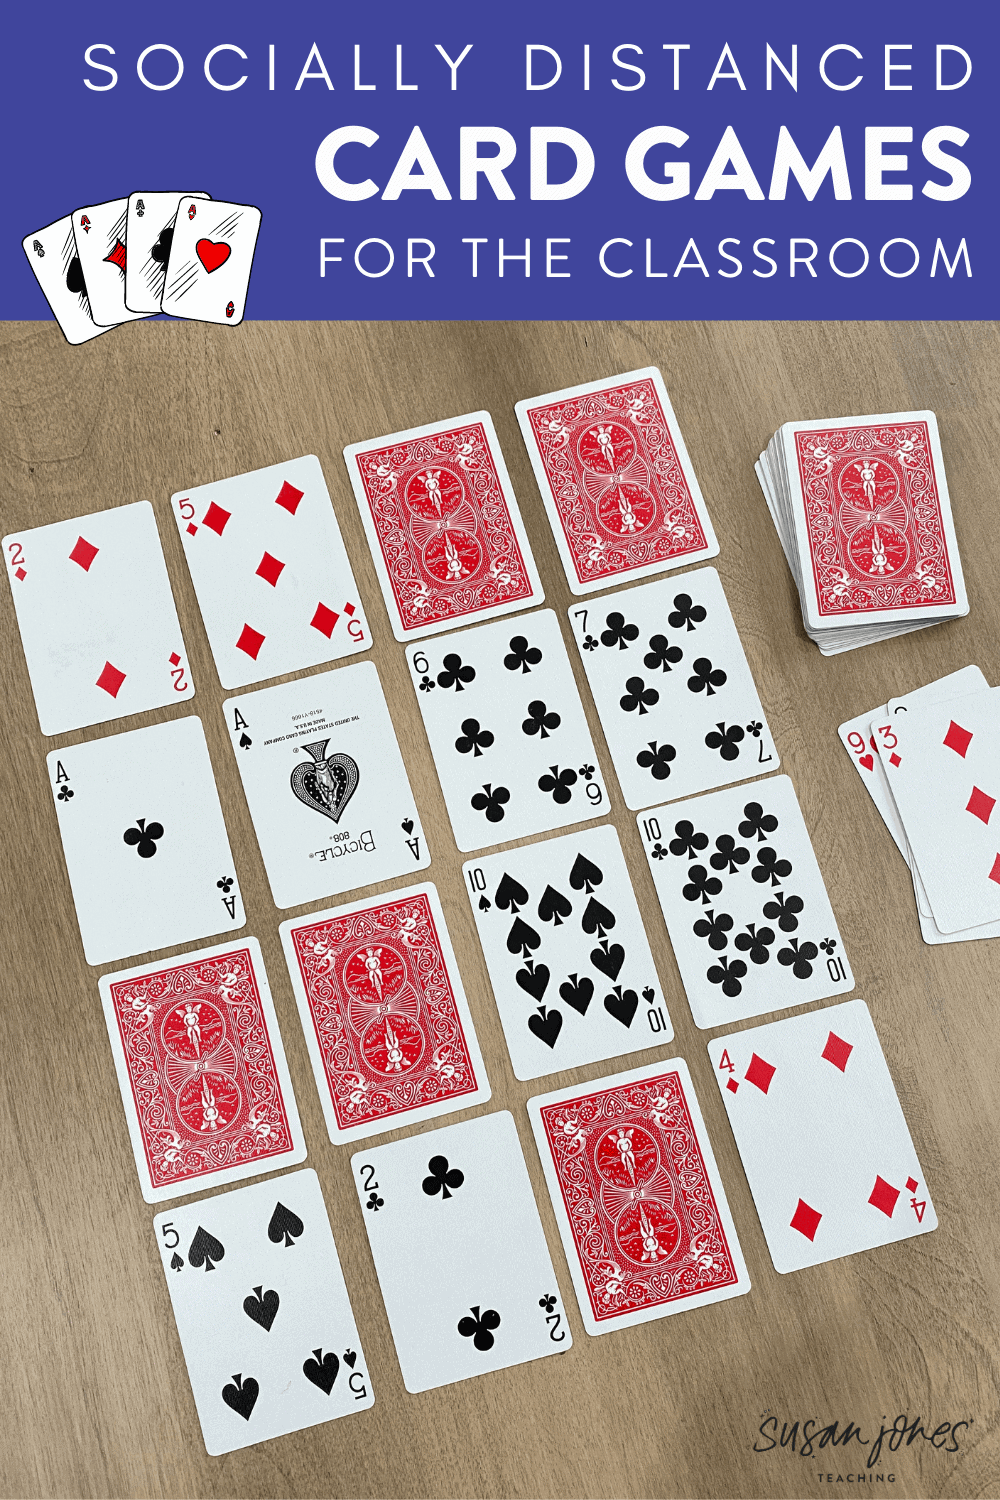 These two card games are perfect to play in a socially distant classroom (and even when social distancing is over)! Head on over to the blog post to see how to play these 2 fun card games for kindergarten and first grade students!